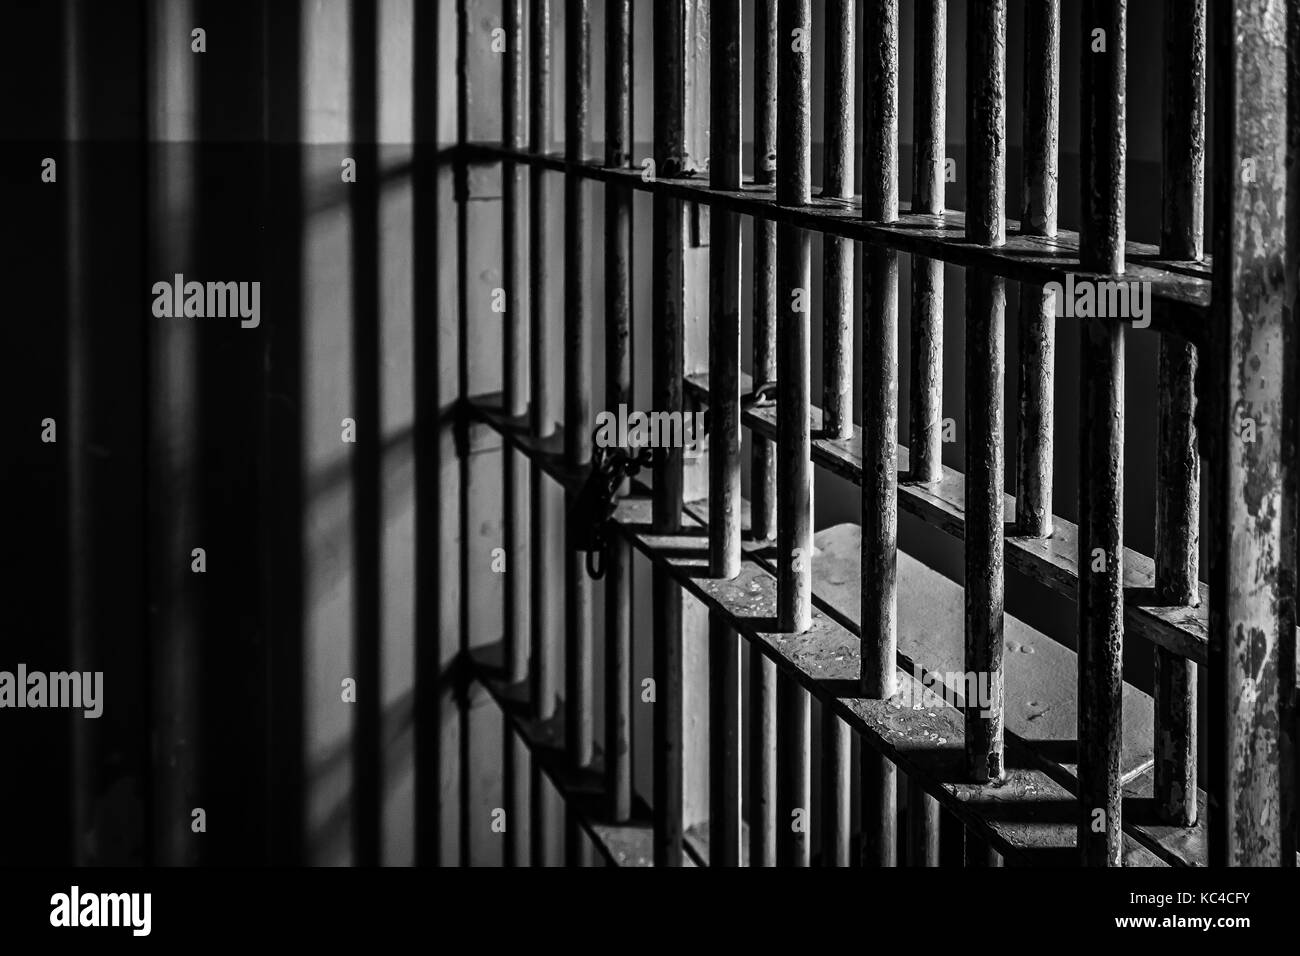 jail cell black and white stock photos images alamy